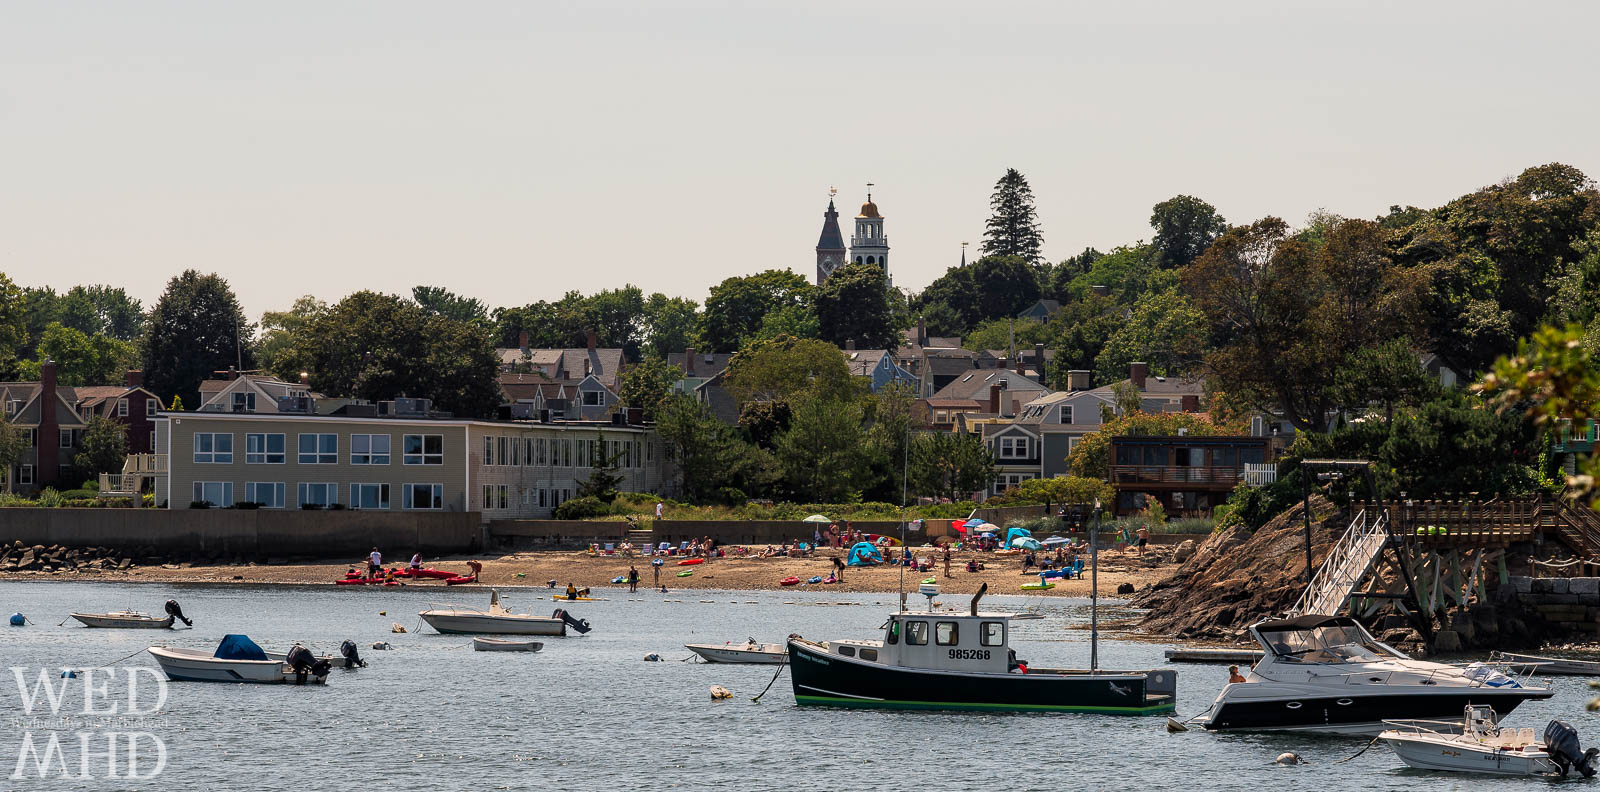 Looking back on Marblehead from Brown's Island to find the symbols of the last days of summer with a few beachgoers enjoying Labor Day sun